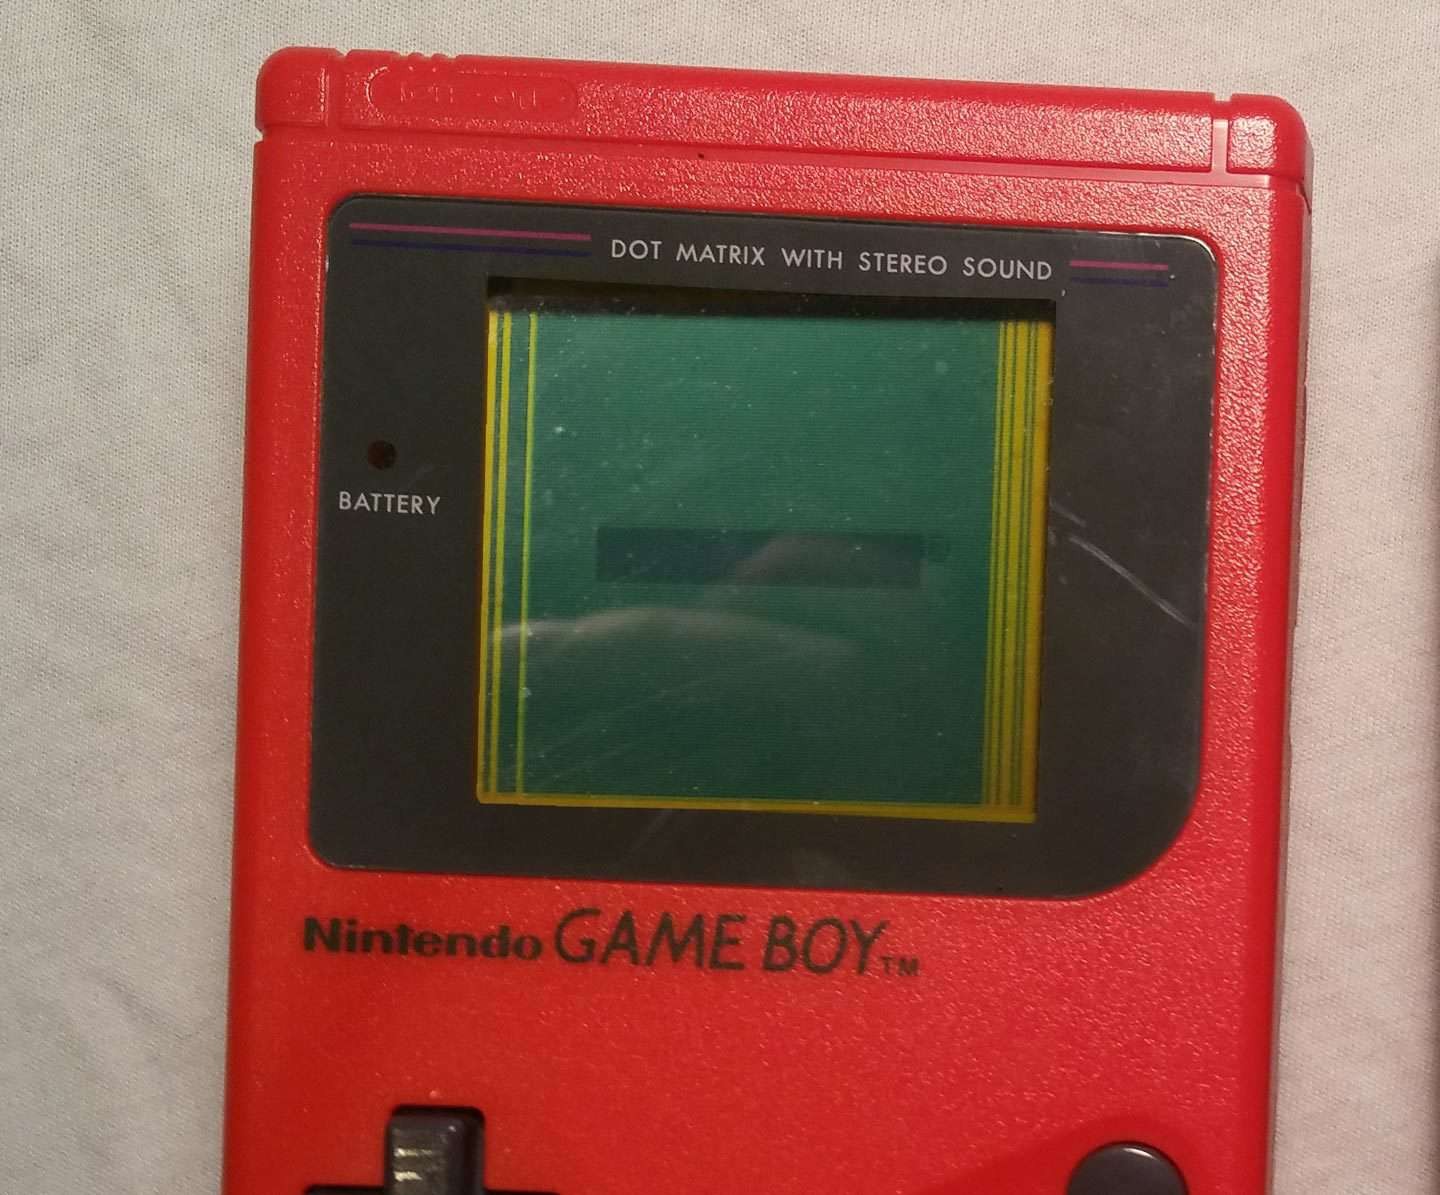 How to fix vertical lines on an original Game Boy screen